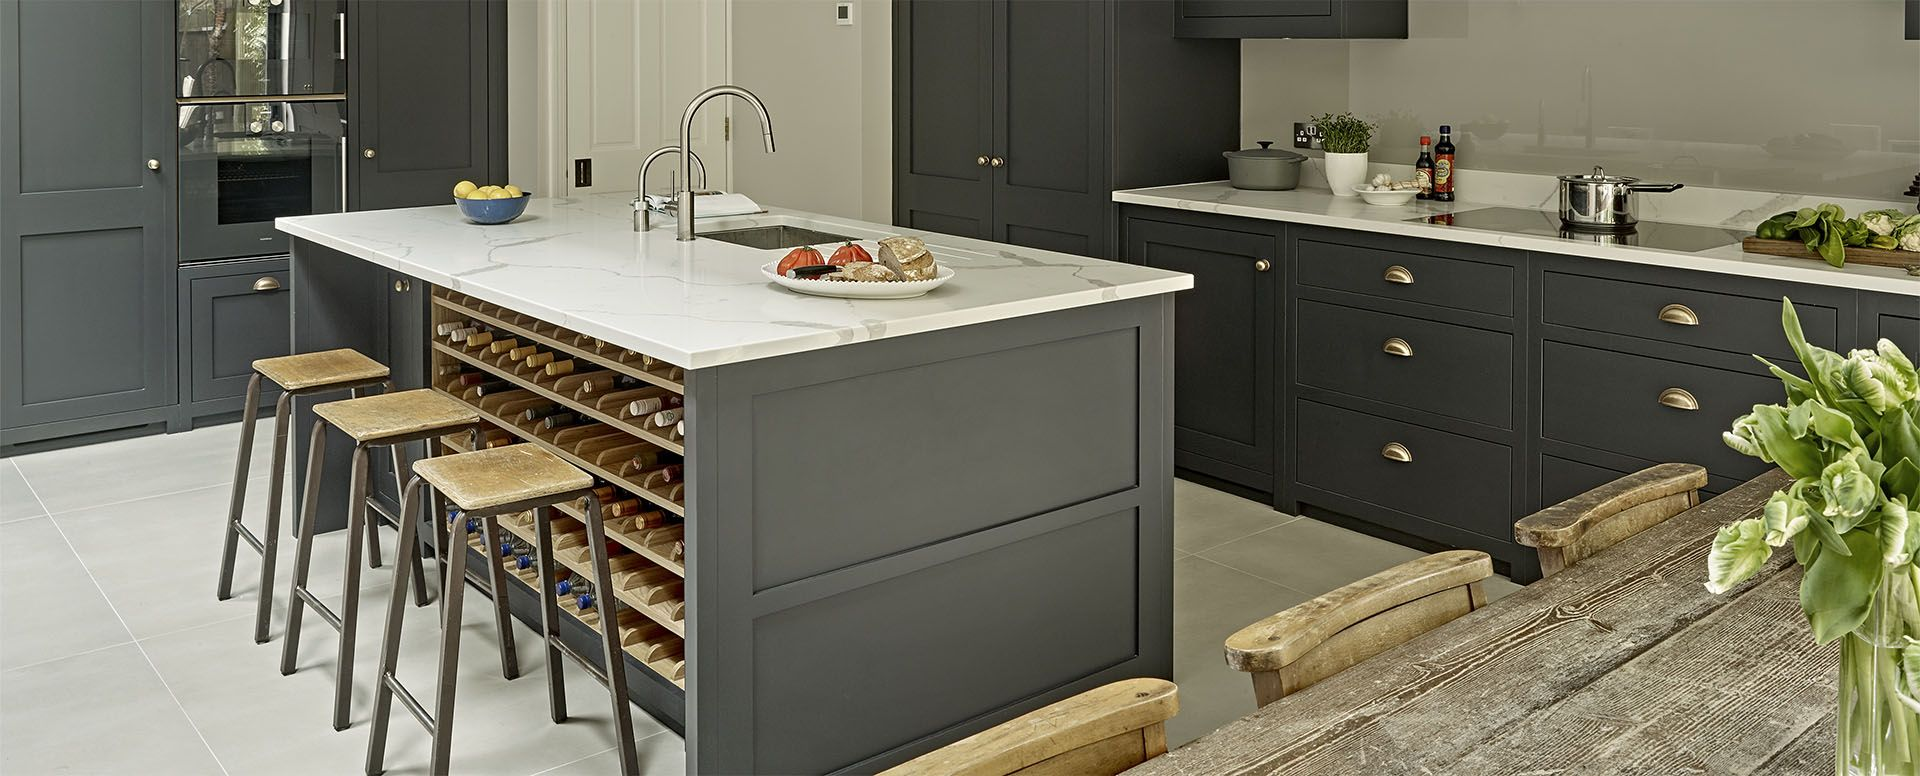 Bespoke dark country kitchen in Battersea - Grey black cabinets and large kitchen island